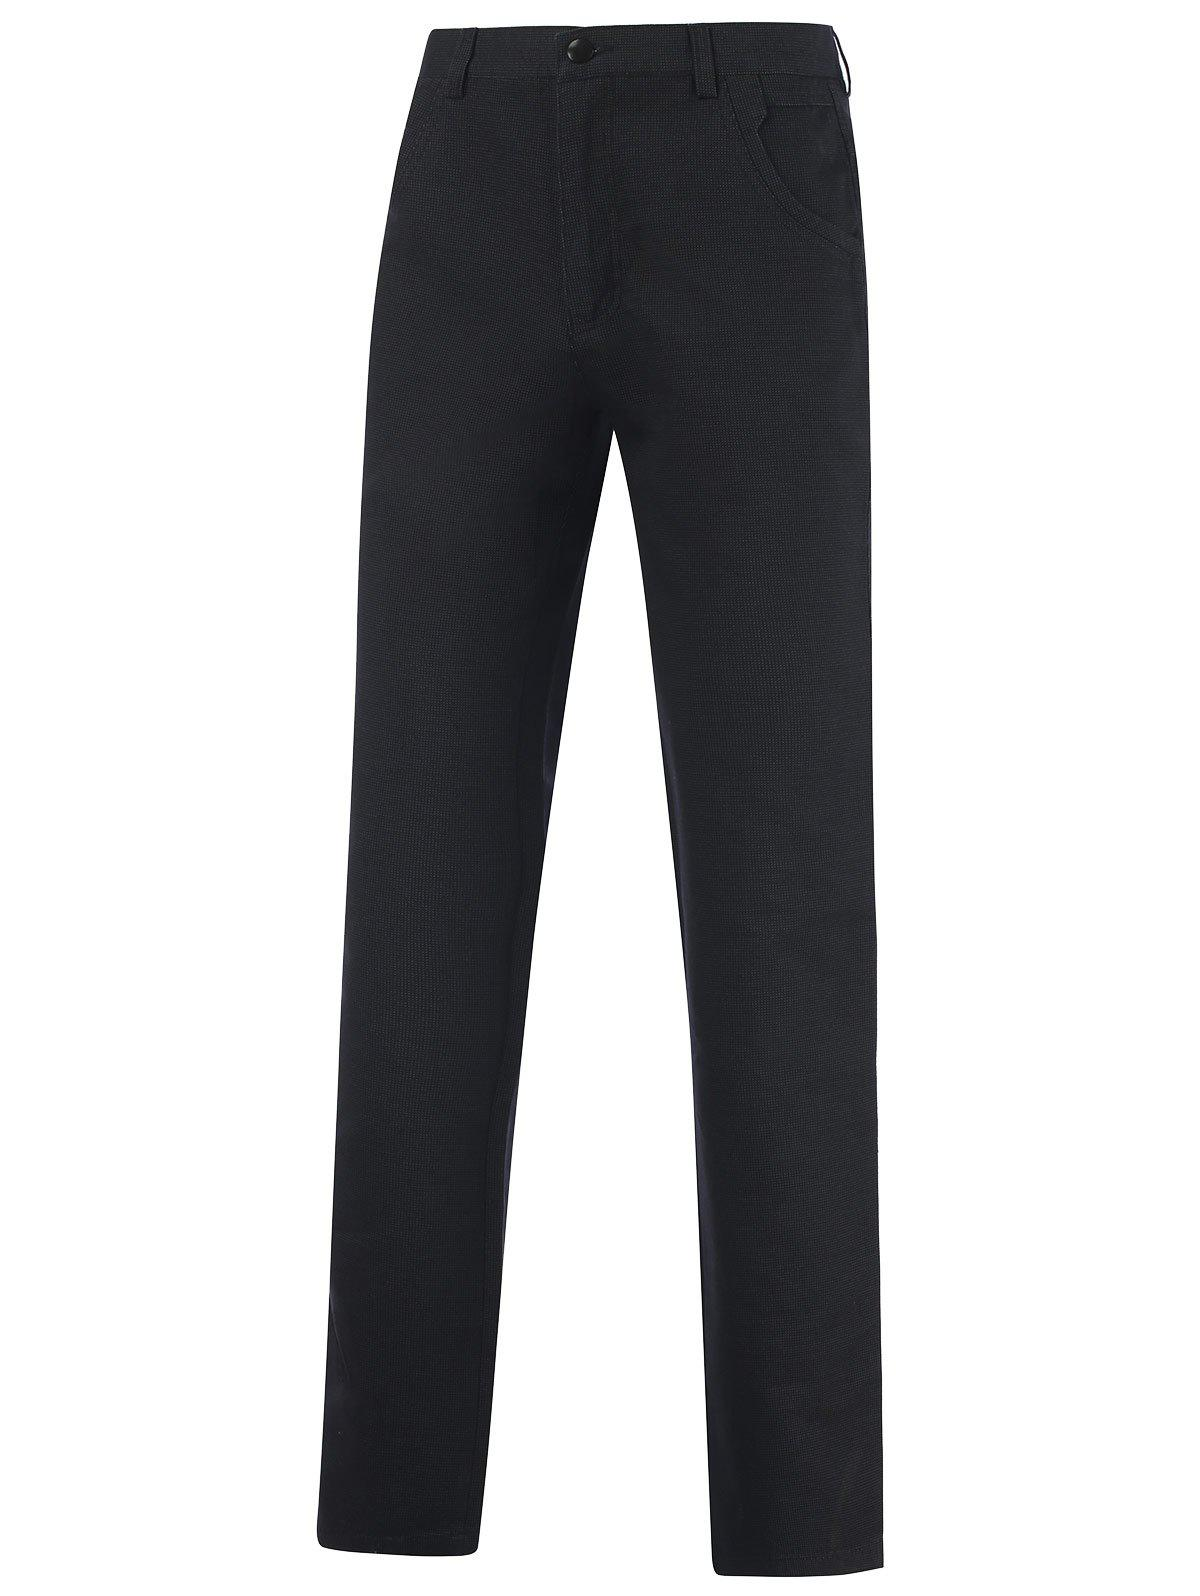 Store Casual Zipper Fly Straight Leg Tailored Pants